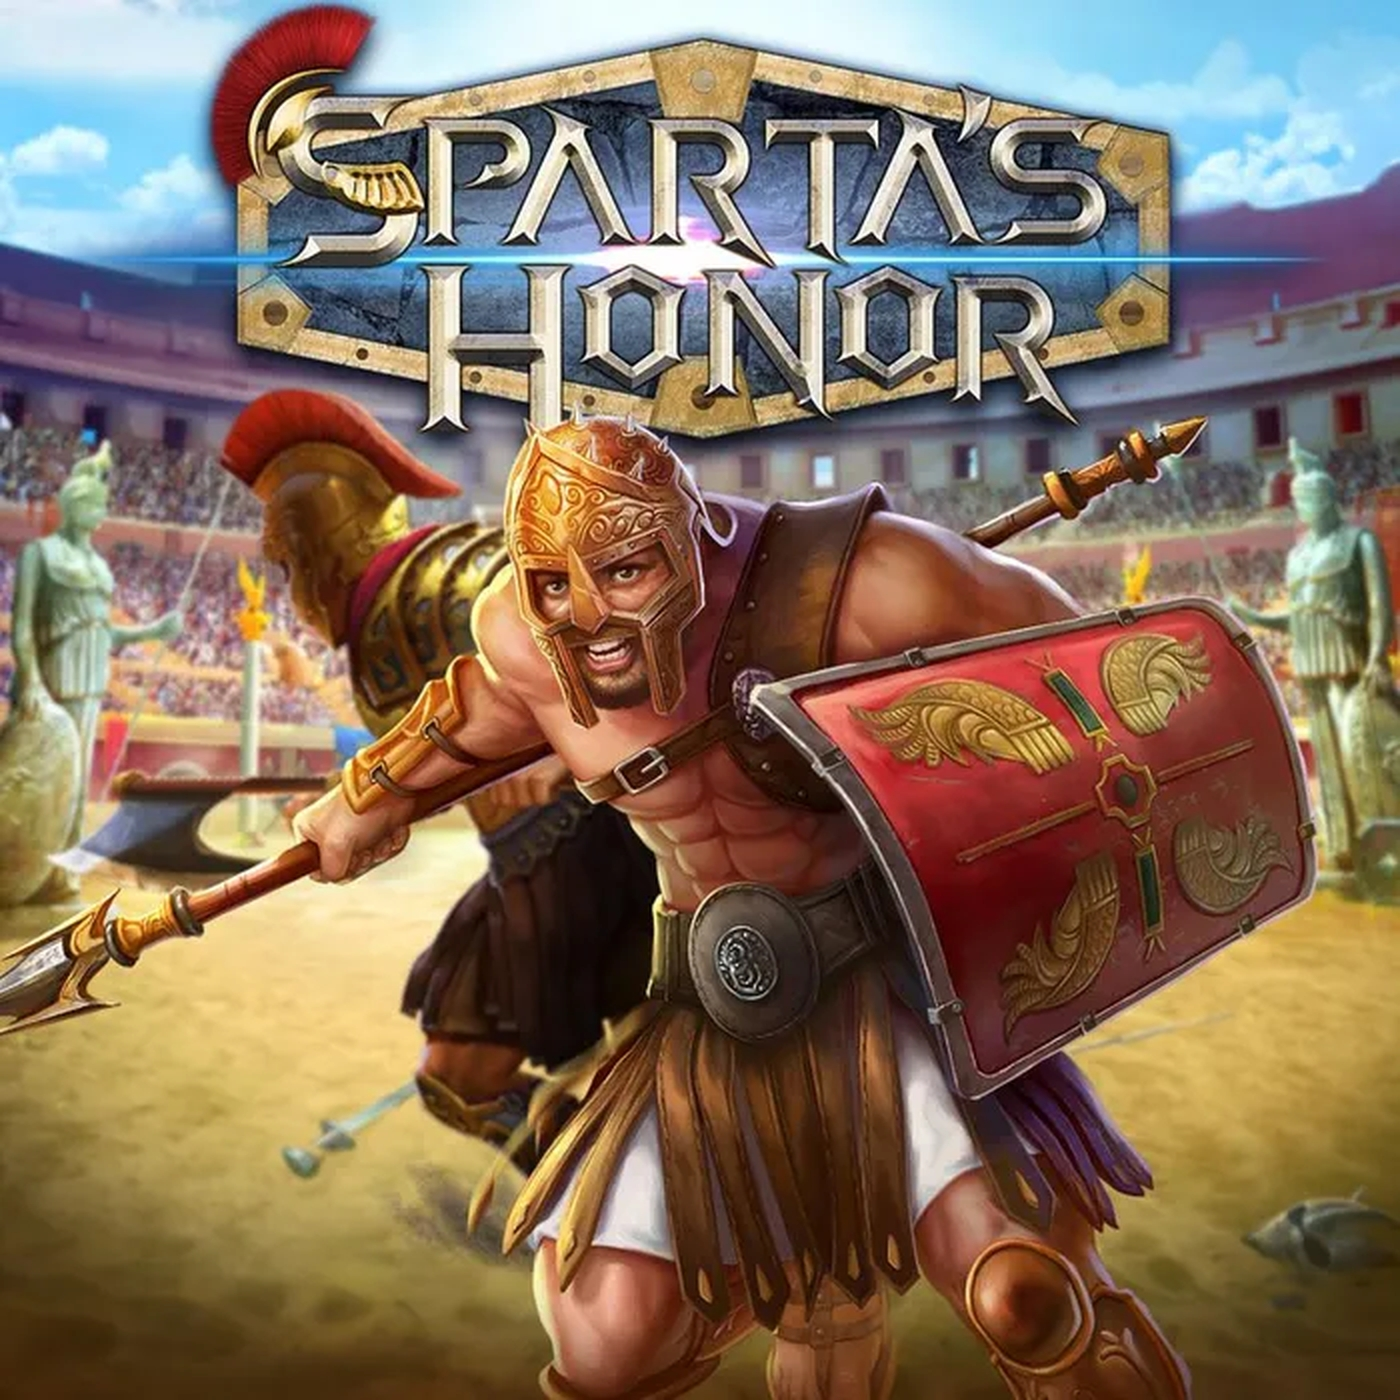 The Sparta's Honor Online Slot Demo Game by SimplePlay